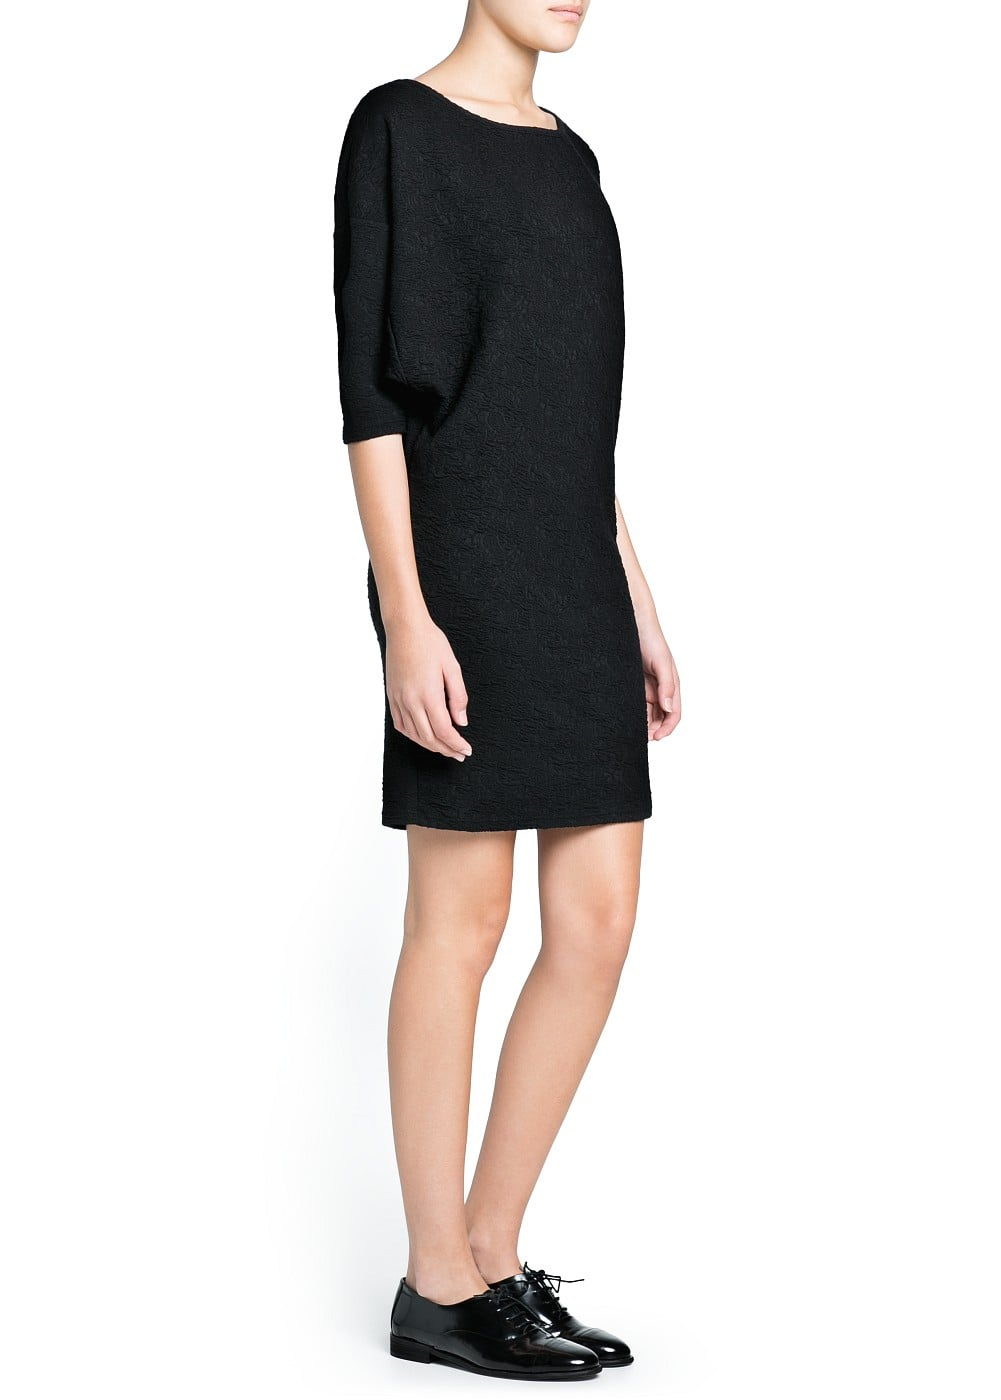 Loose-fit textured dress